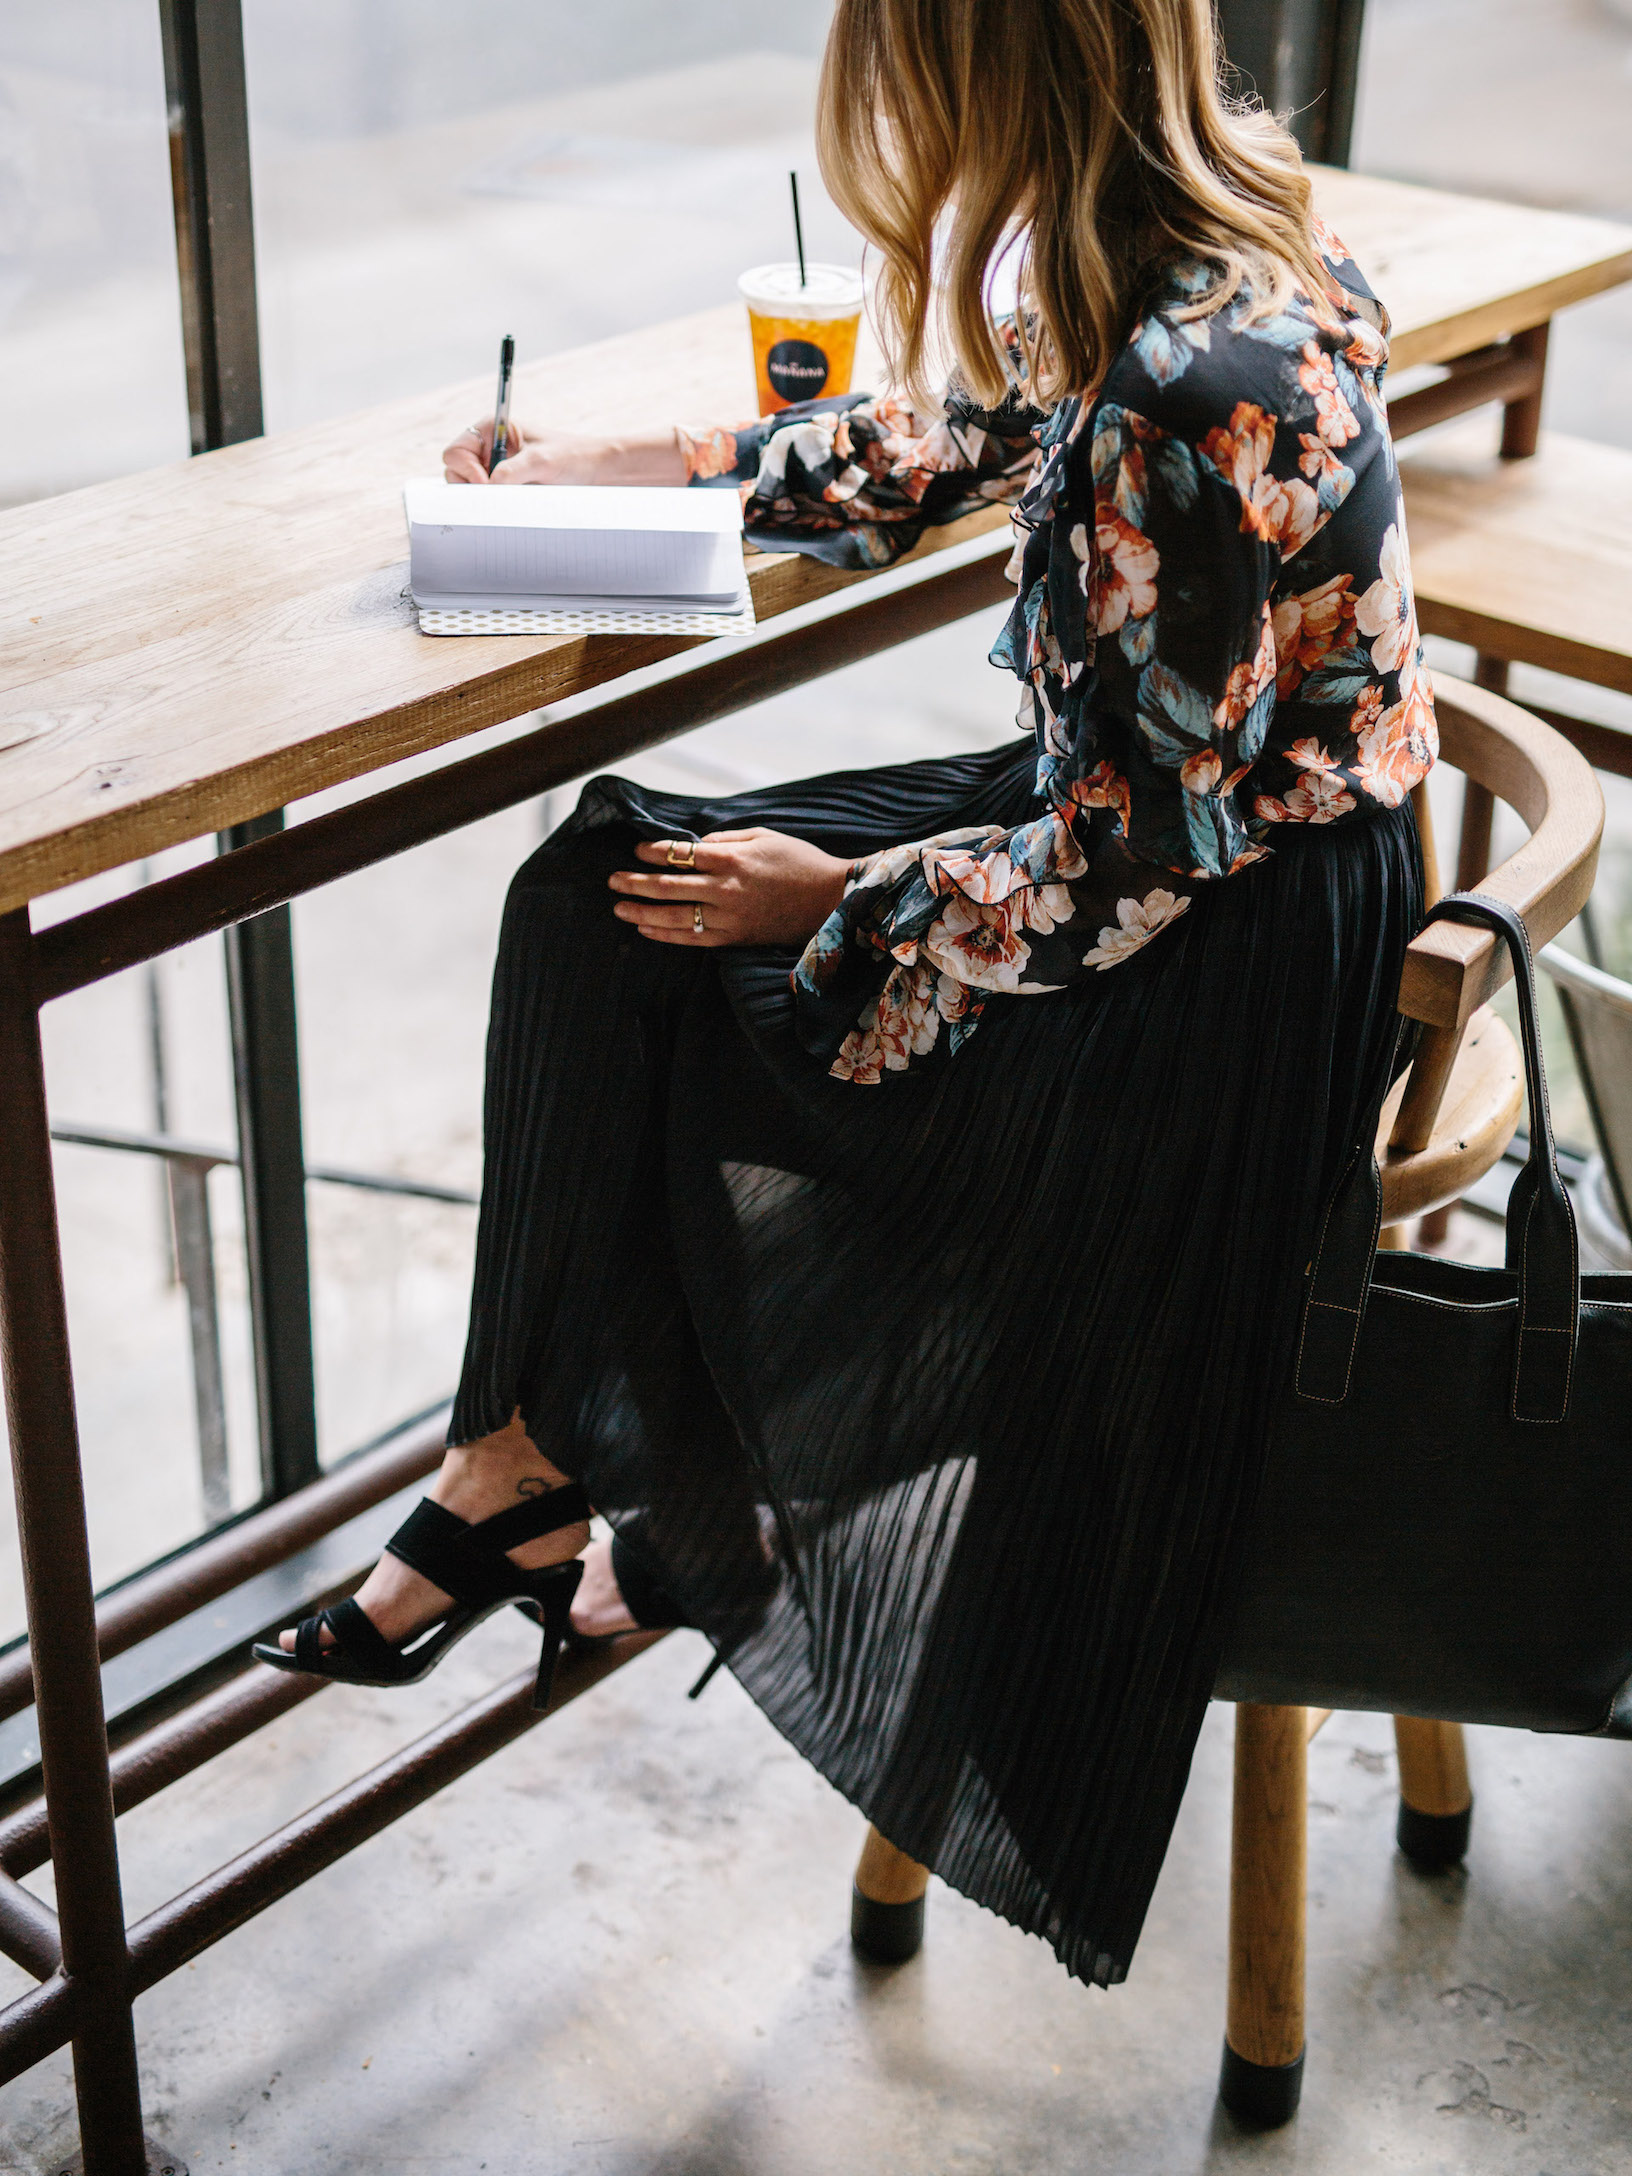 Feminine professional workwear // A Week Of Summertime Minimalist Outfits With Ava Darnell, Founder Of Slumlove Sweater Company on The Good Trade